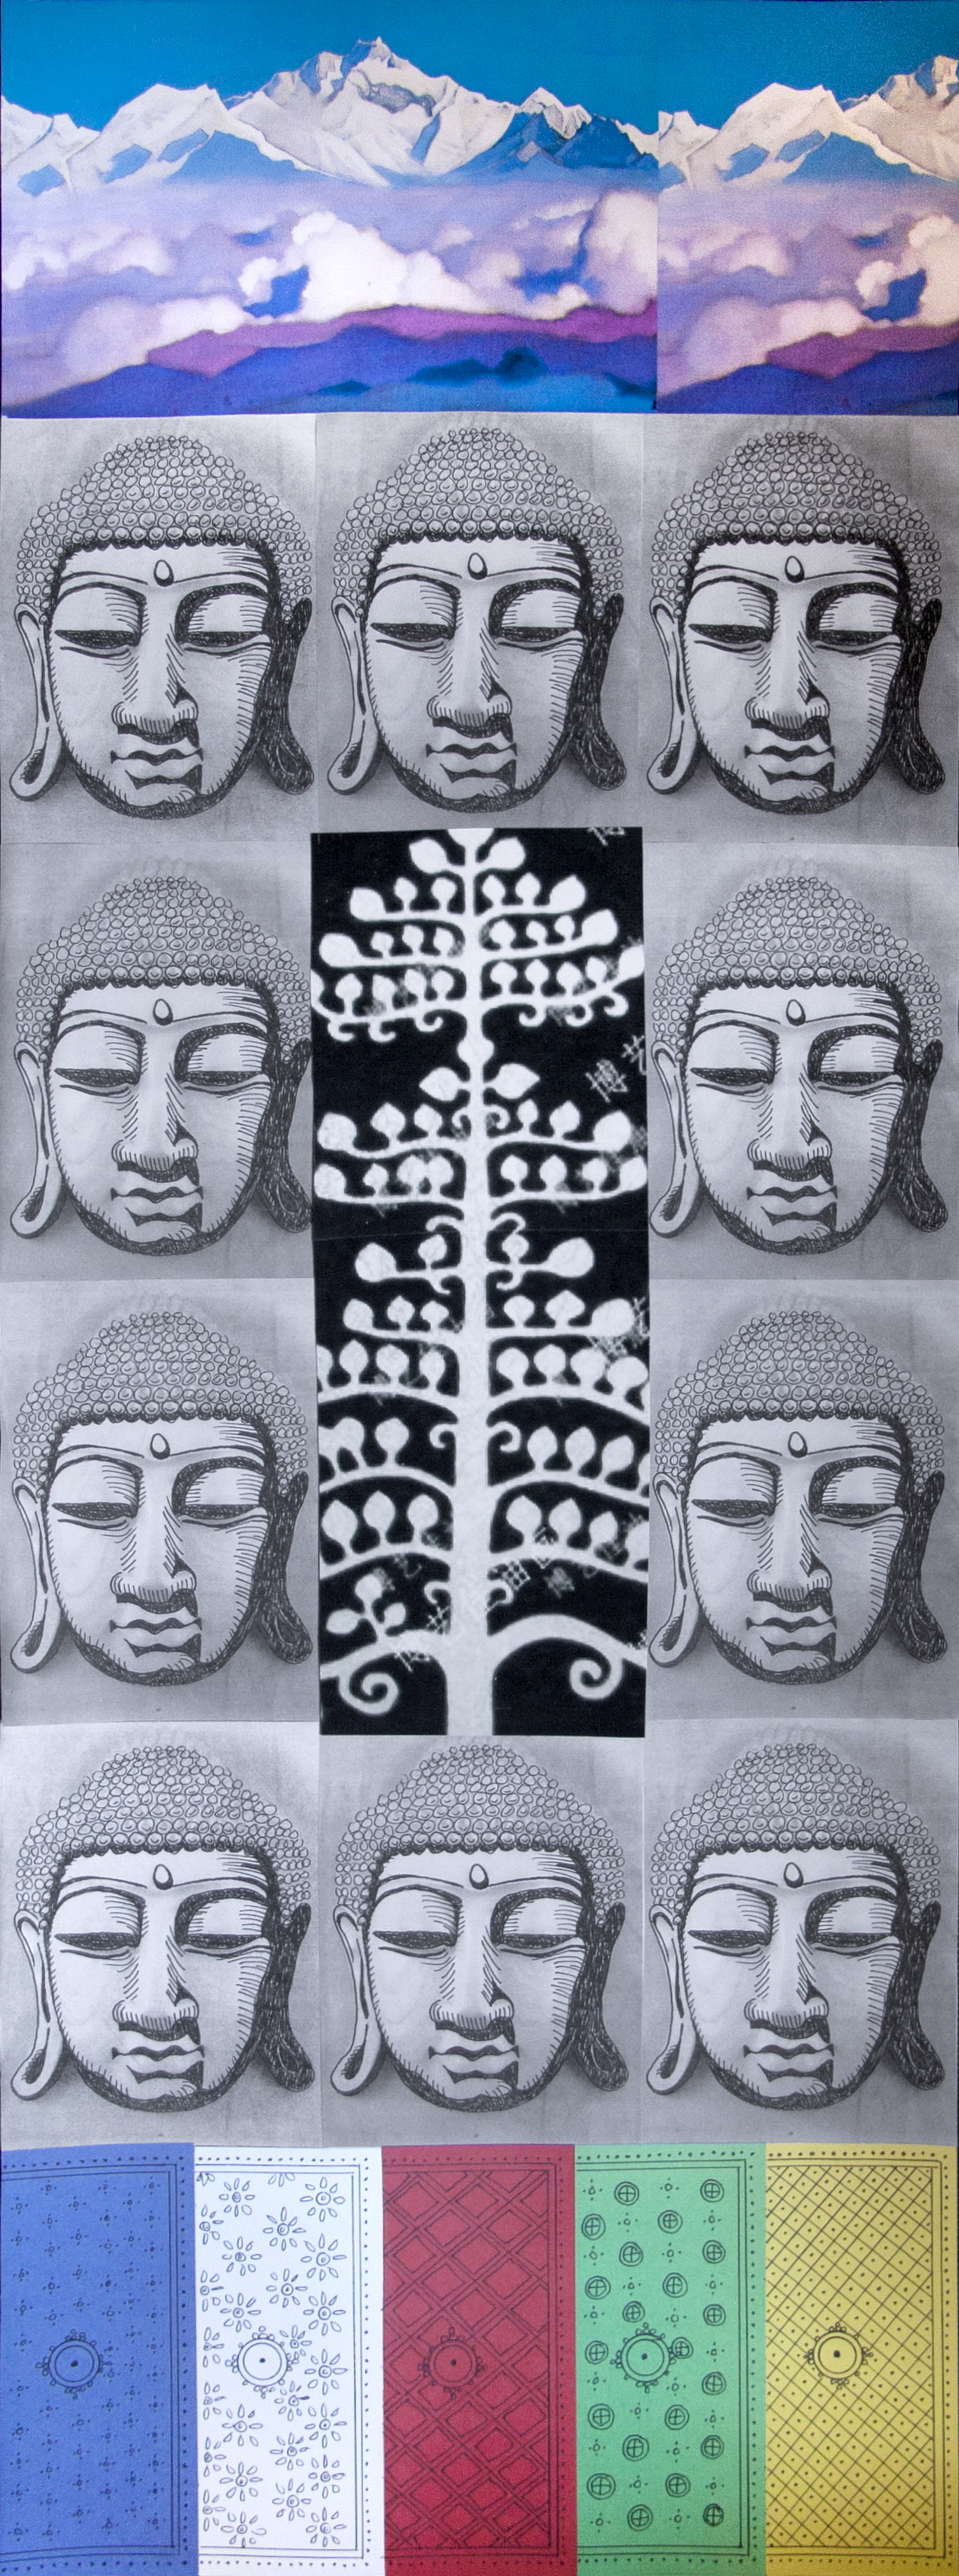 "Himalayan Jewel Tree, collage on paper, 41"" x 15"", 2014"